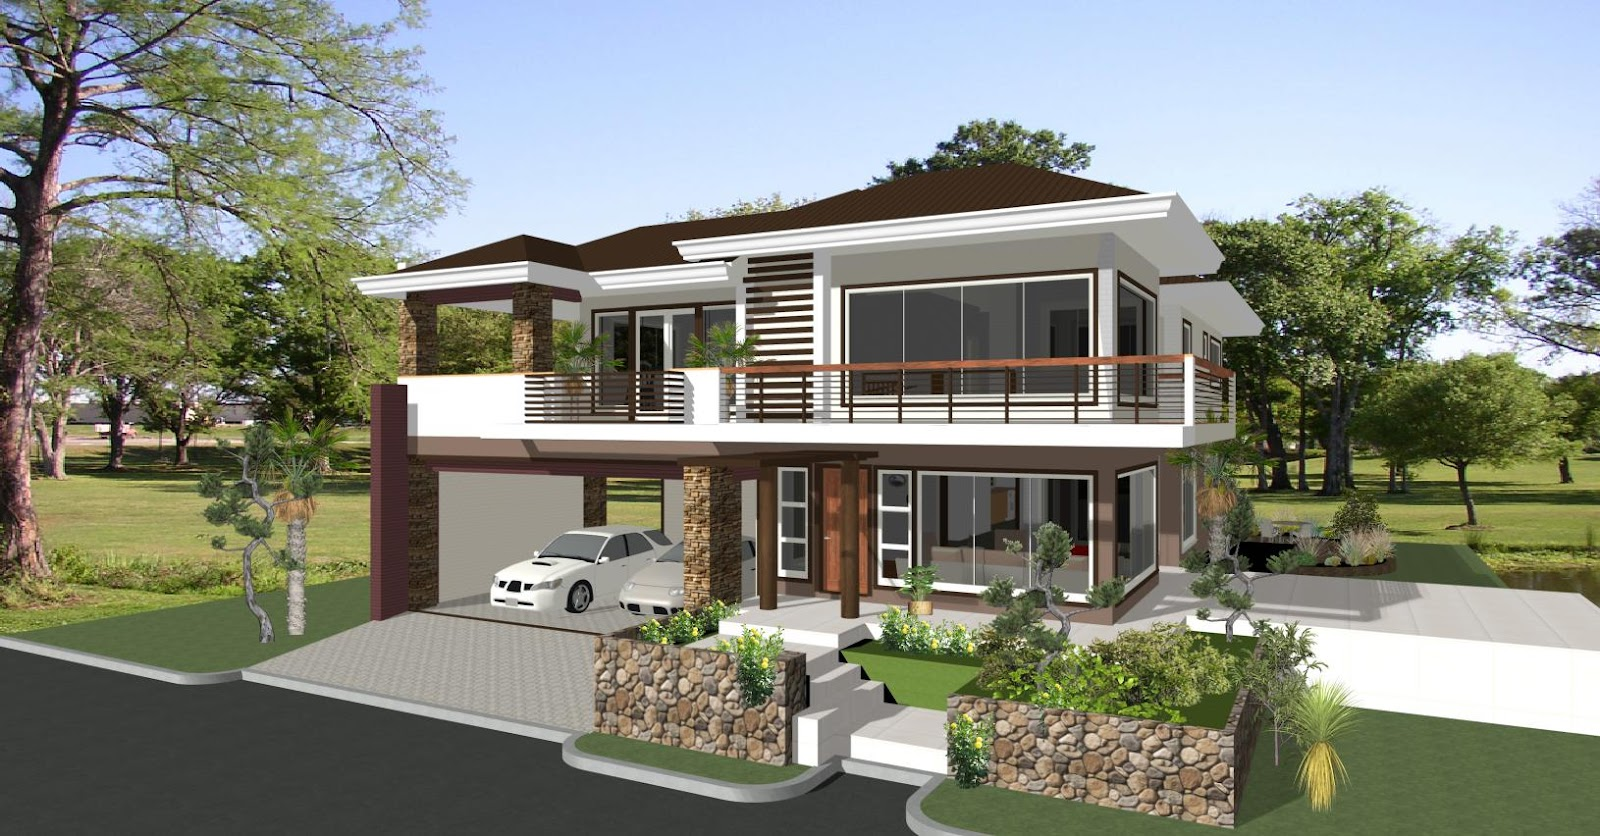 House designs in the philippines in iloilo by erecre group for Looking for house plans